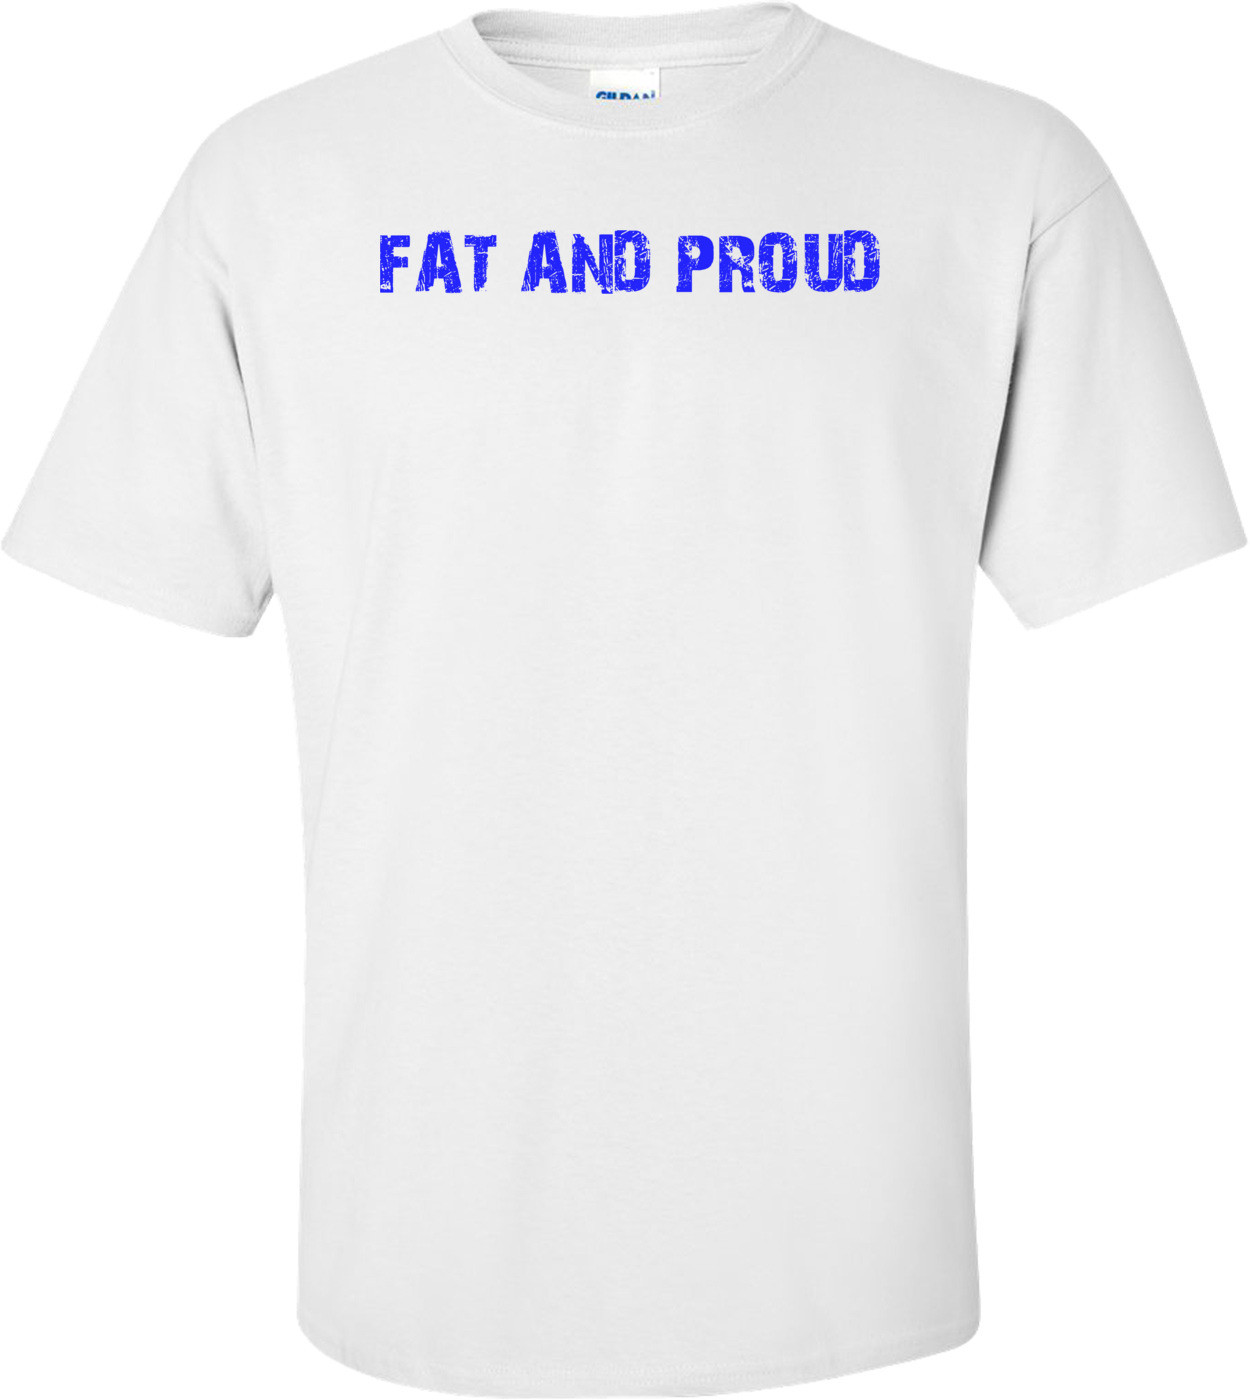 FAT AND PROUD Shirt